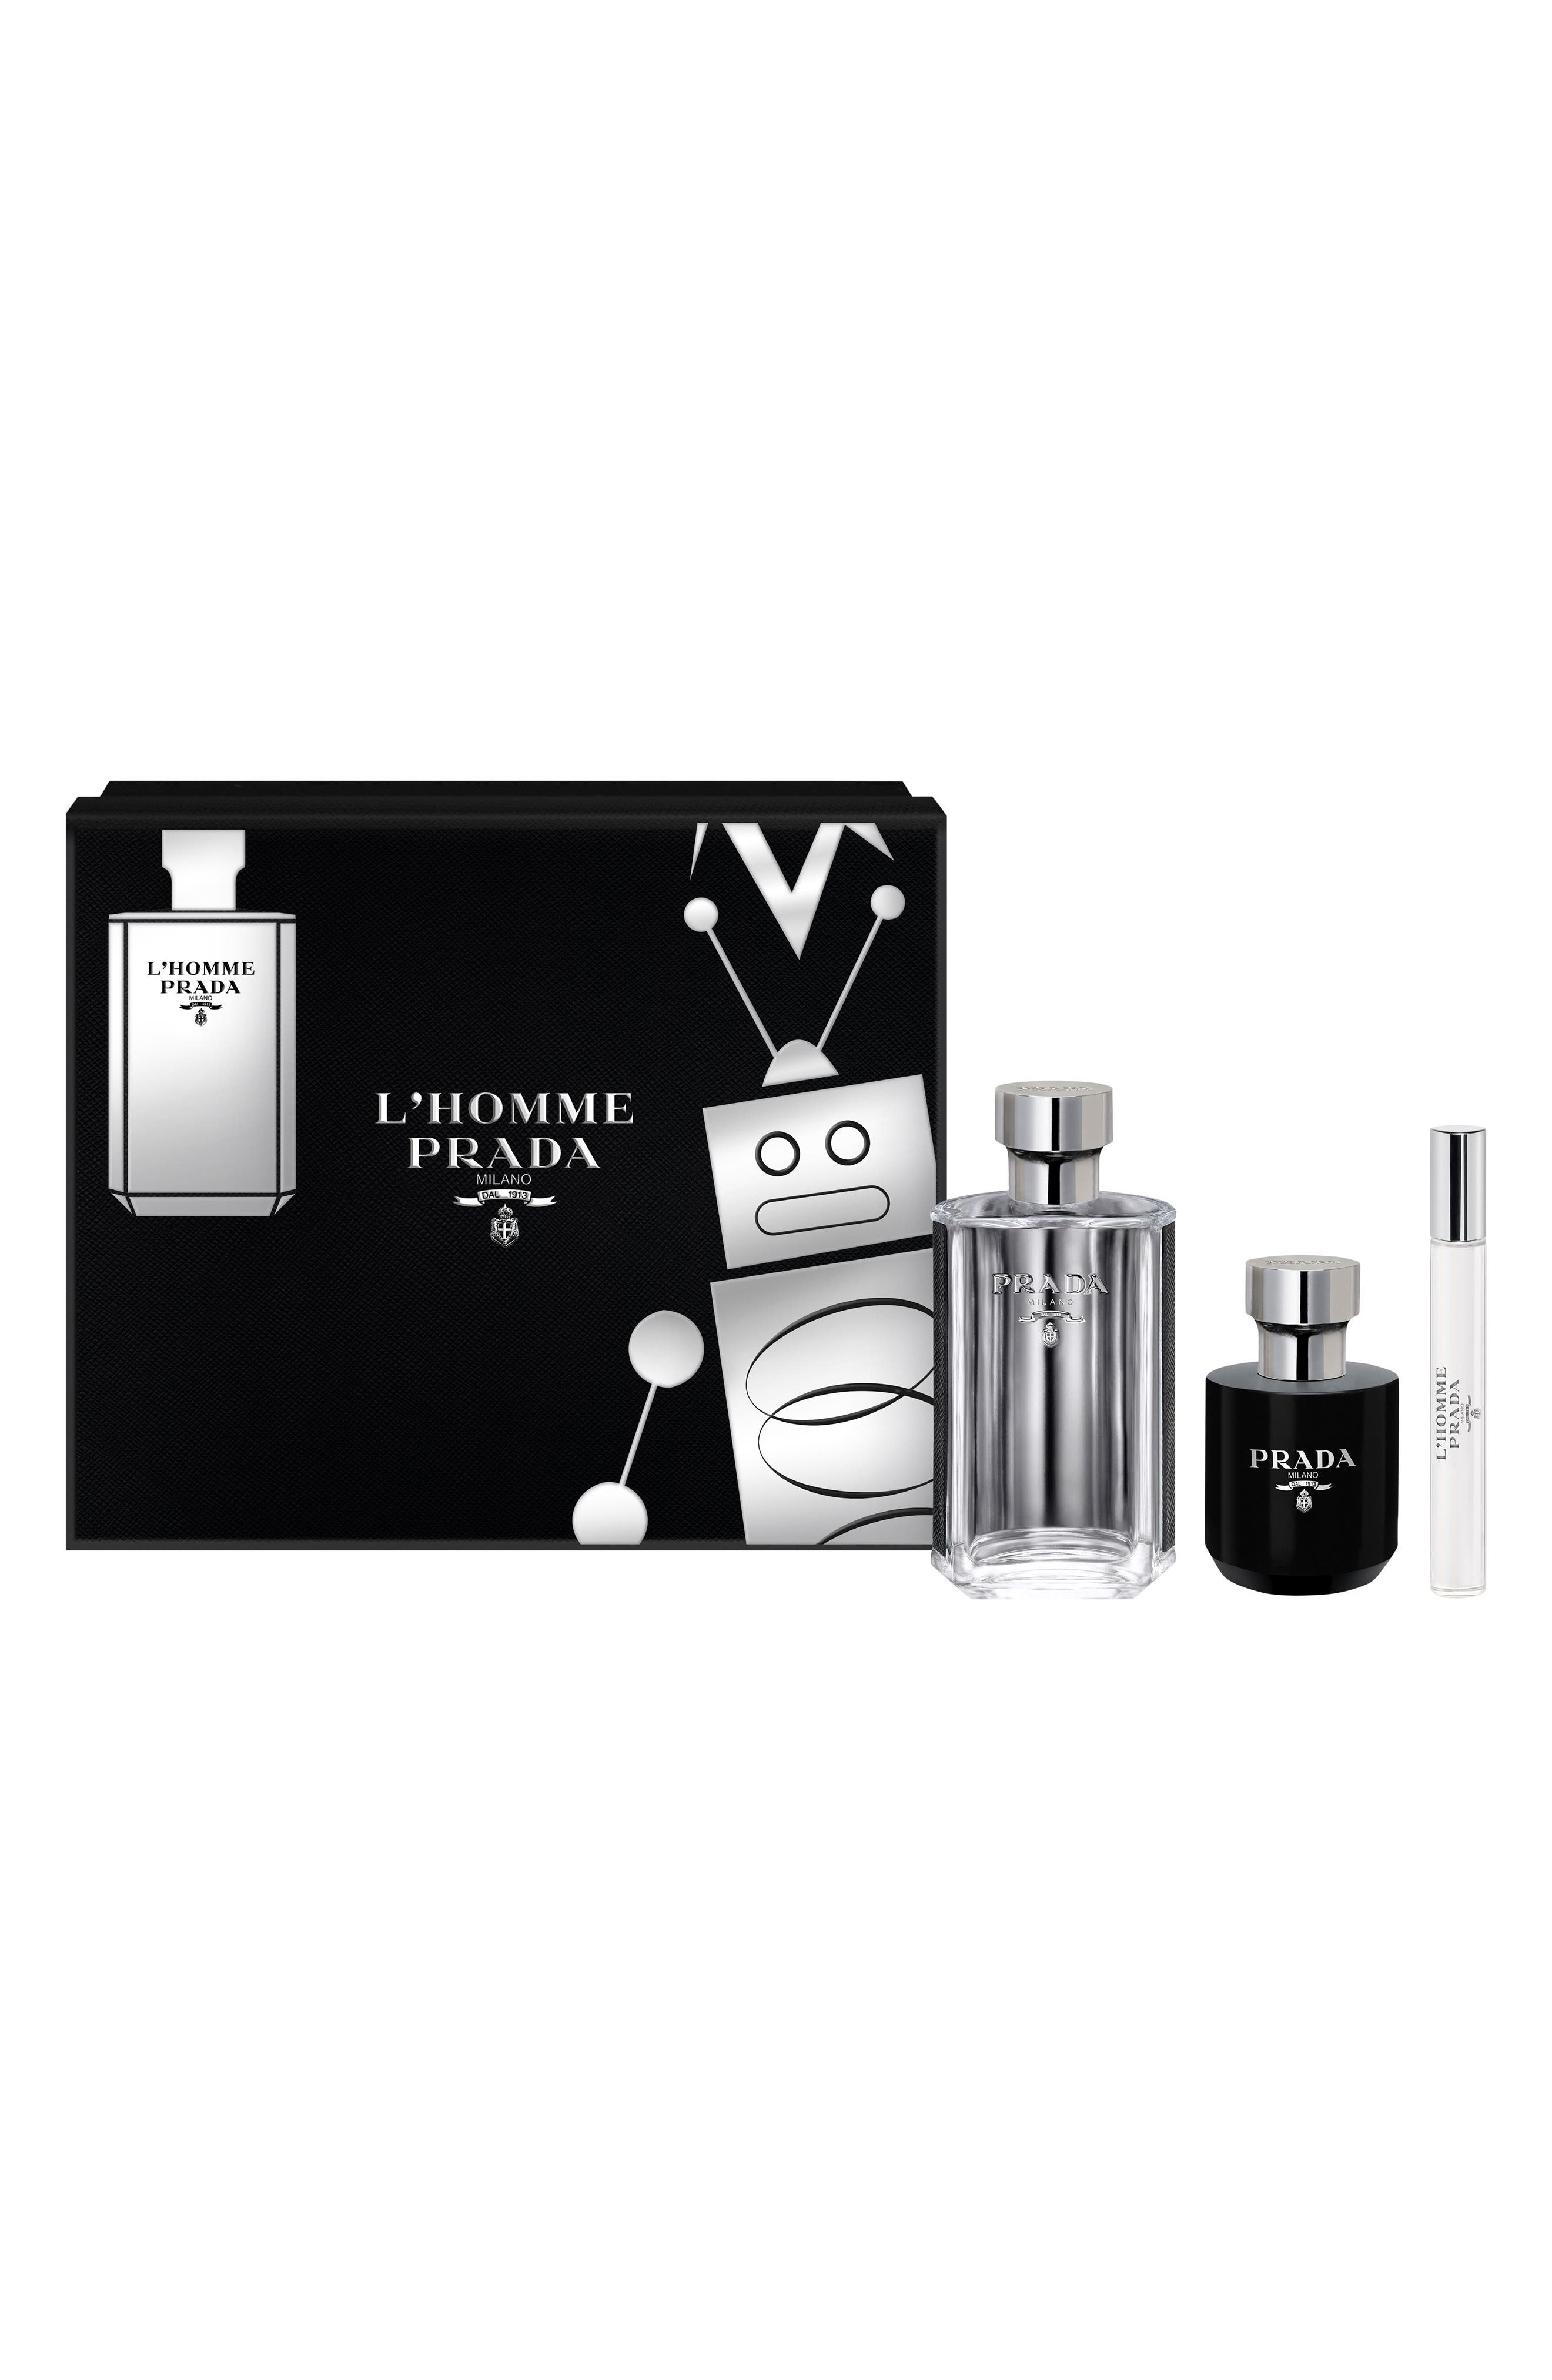 Prada L'Homme Prada Set ($140 Value)